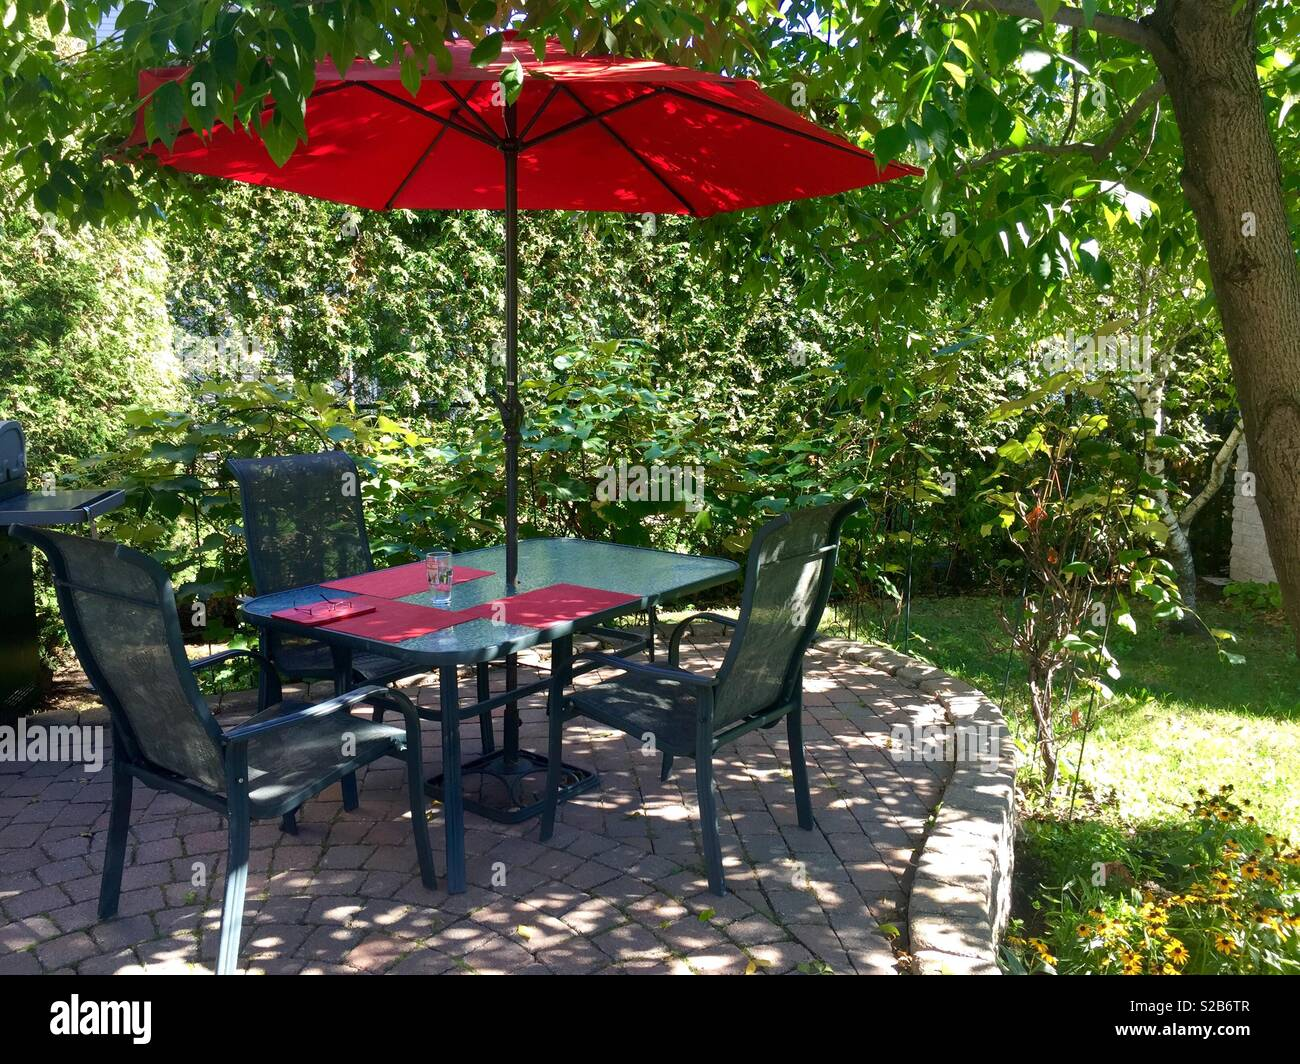 Patio Table With Red Umbrella And Three Chairs On The Patio In The